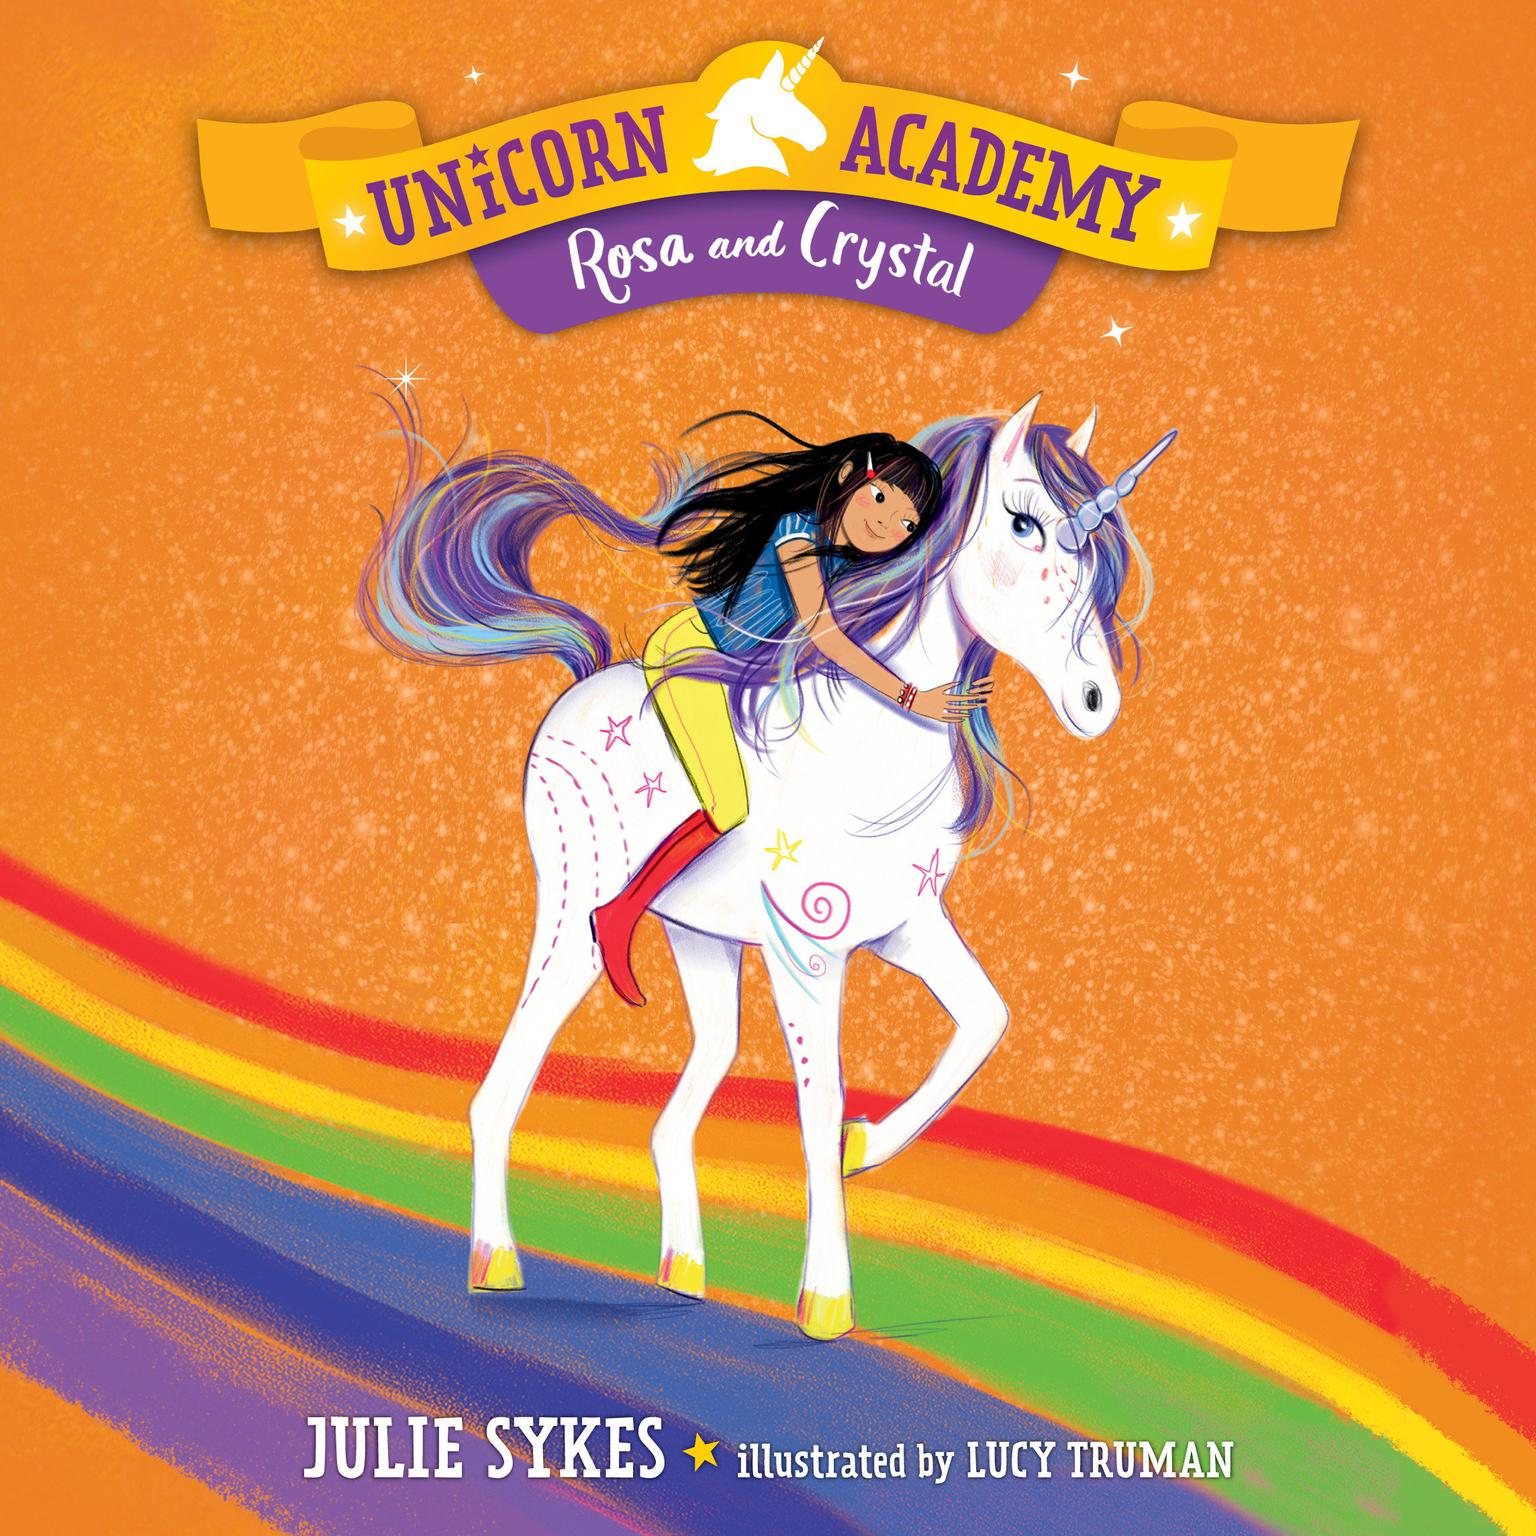 Unicorn Academy #7: Rosa and Crystal Audiobook, by Julie Sykes